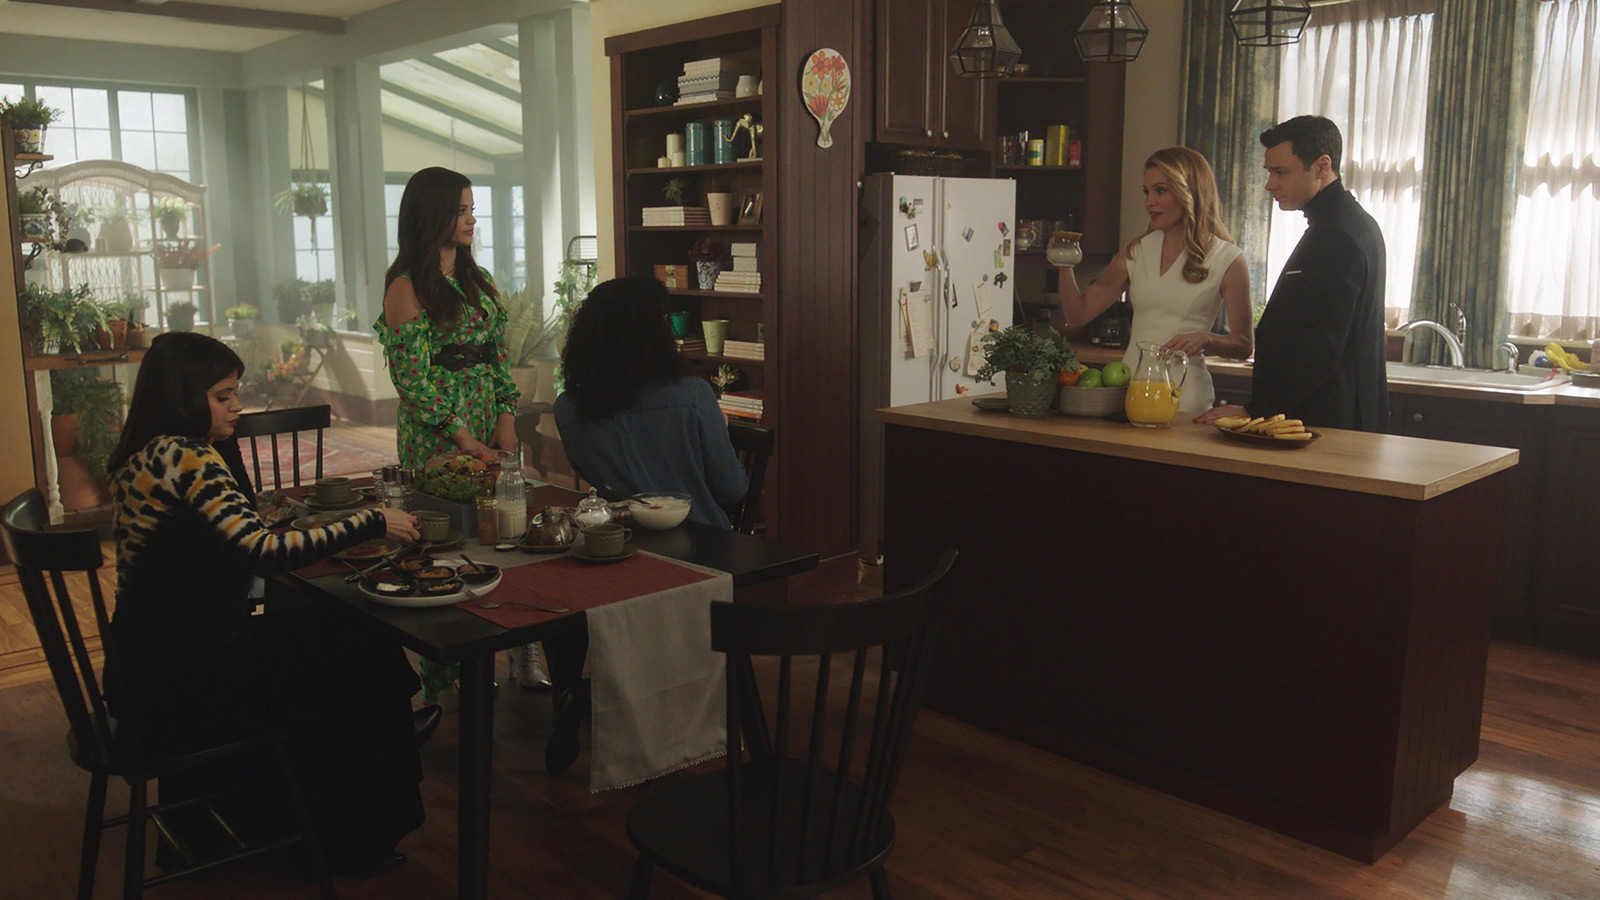 CHARMED: S1 - VERA MANOR - KITCHEN - SCREEN STILL